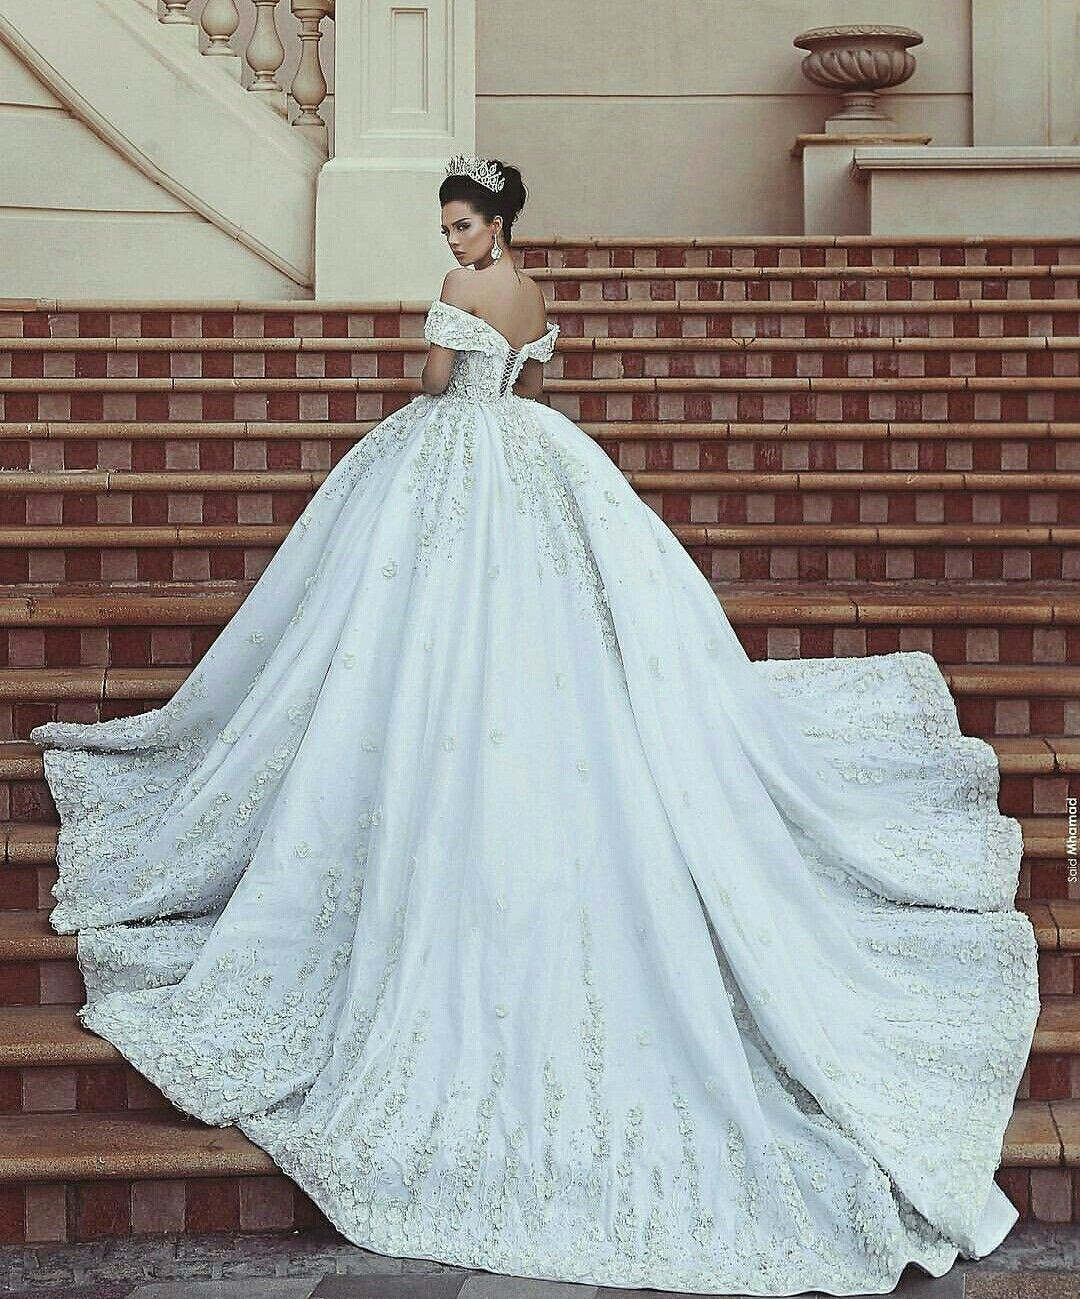 Pin by Hind Salim on Wedding dress   Ball gowns wedding, Ball gown ...